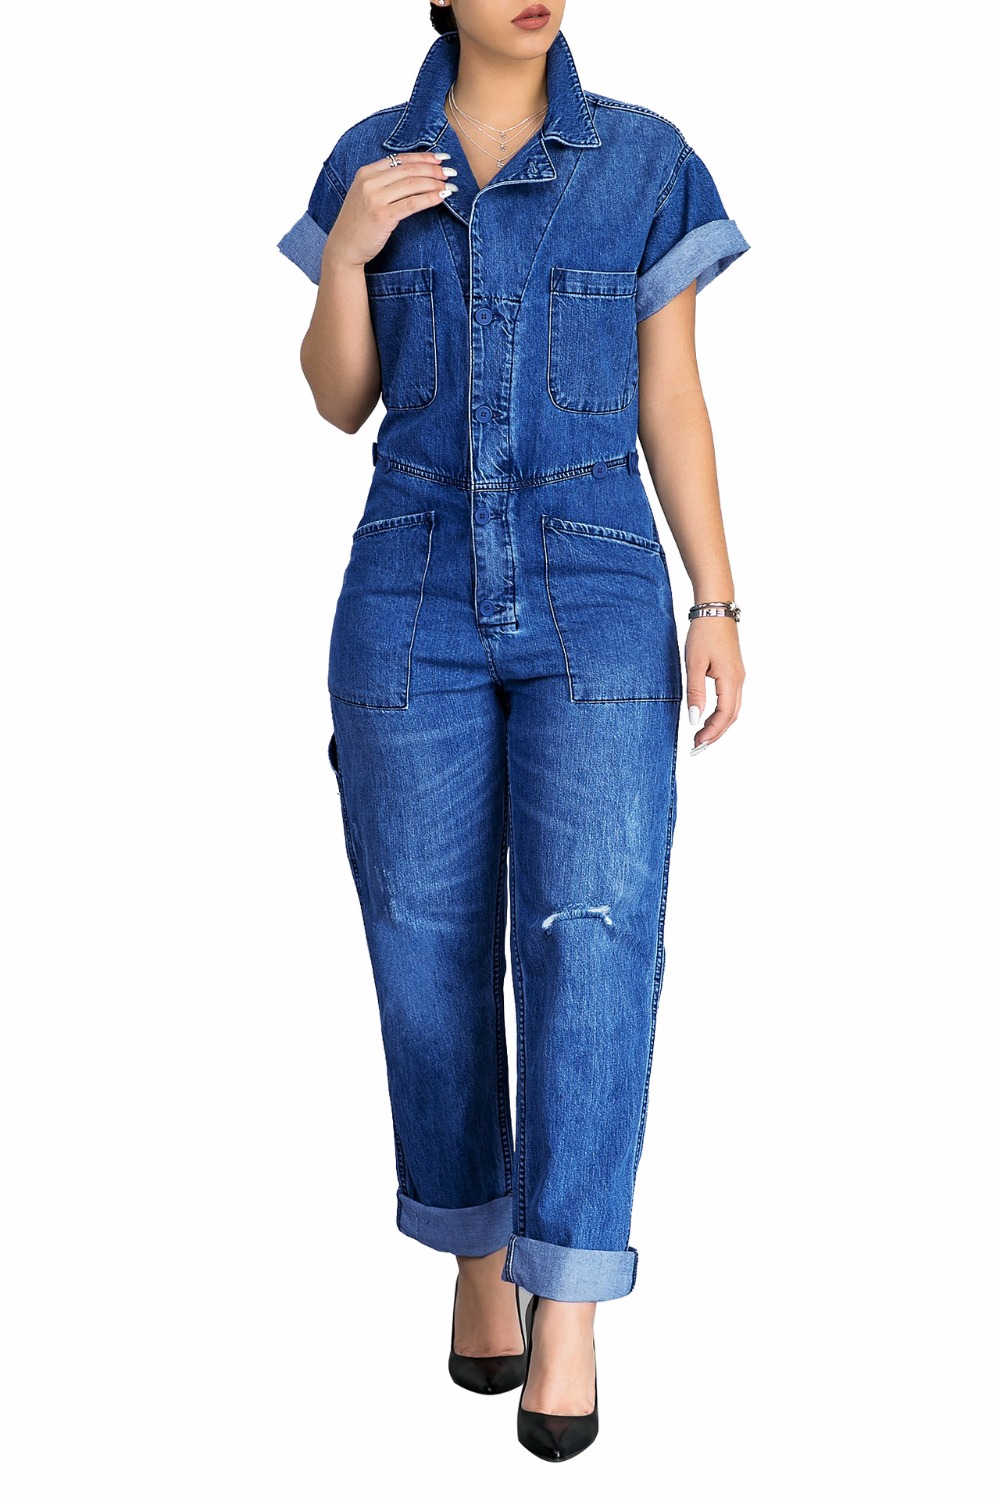 6f5b574ce37d Rolled Up Short Sleeve Loose Denim Jumpsuit Plus Size Single Breasted With Pockets  Jeans Rompers Women Casual One Piece Coverall-in Jumpsuits from Women s ...